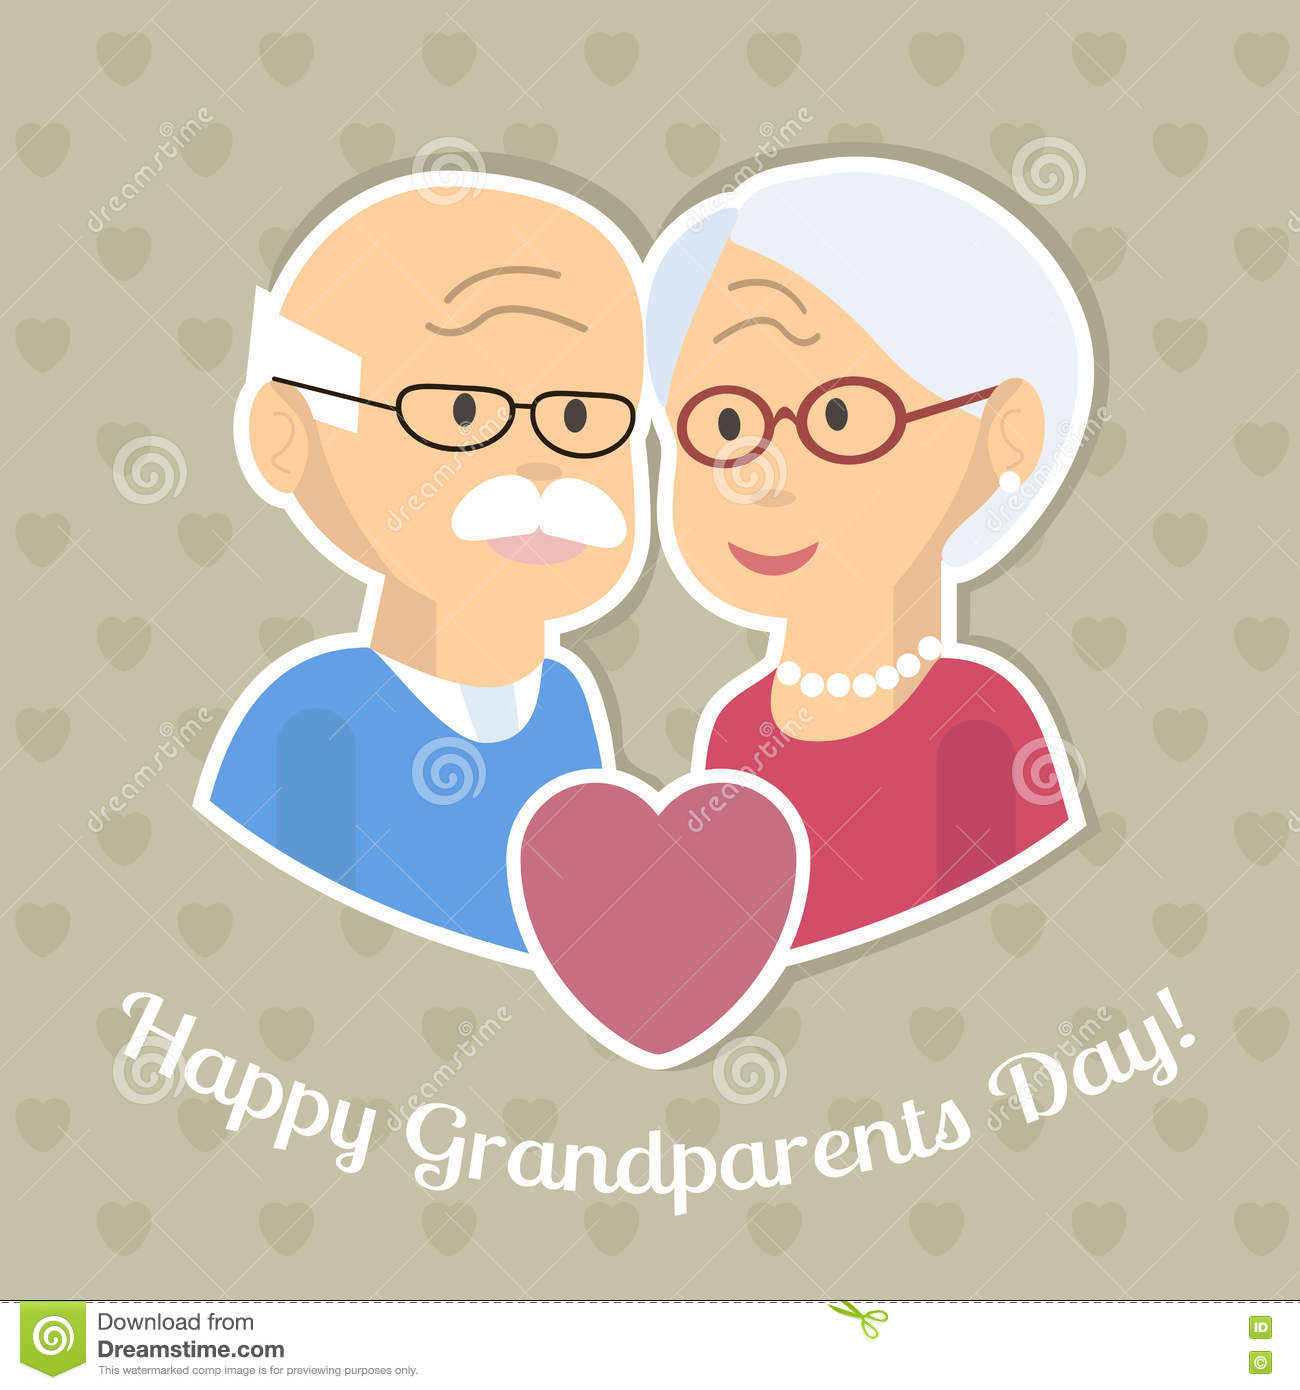 Grandparents day card stock vector illustration of illustration grandparents day card kristyandbryce Gallery